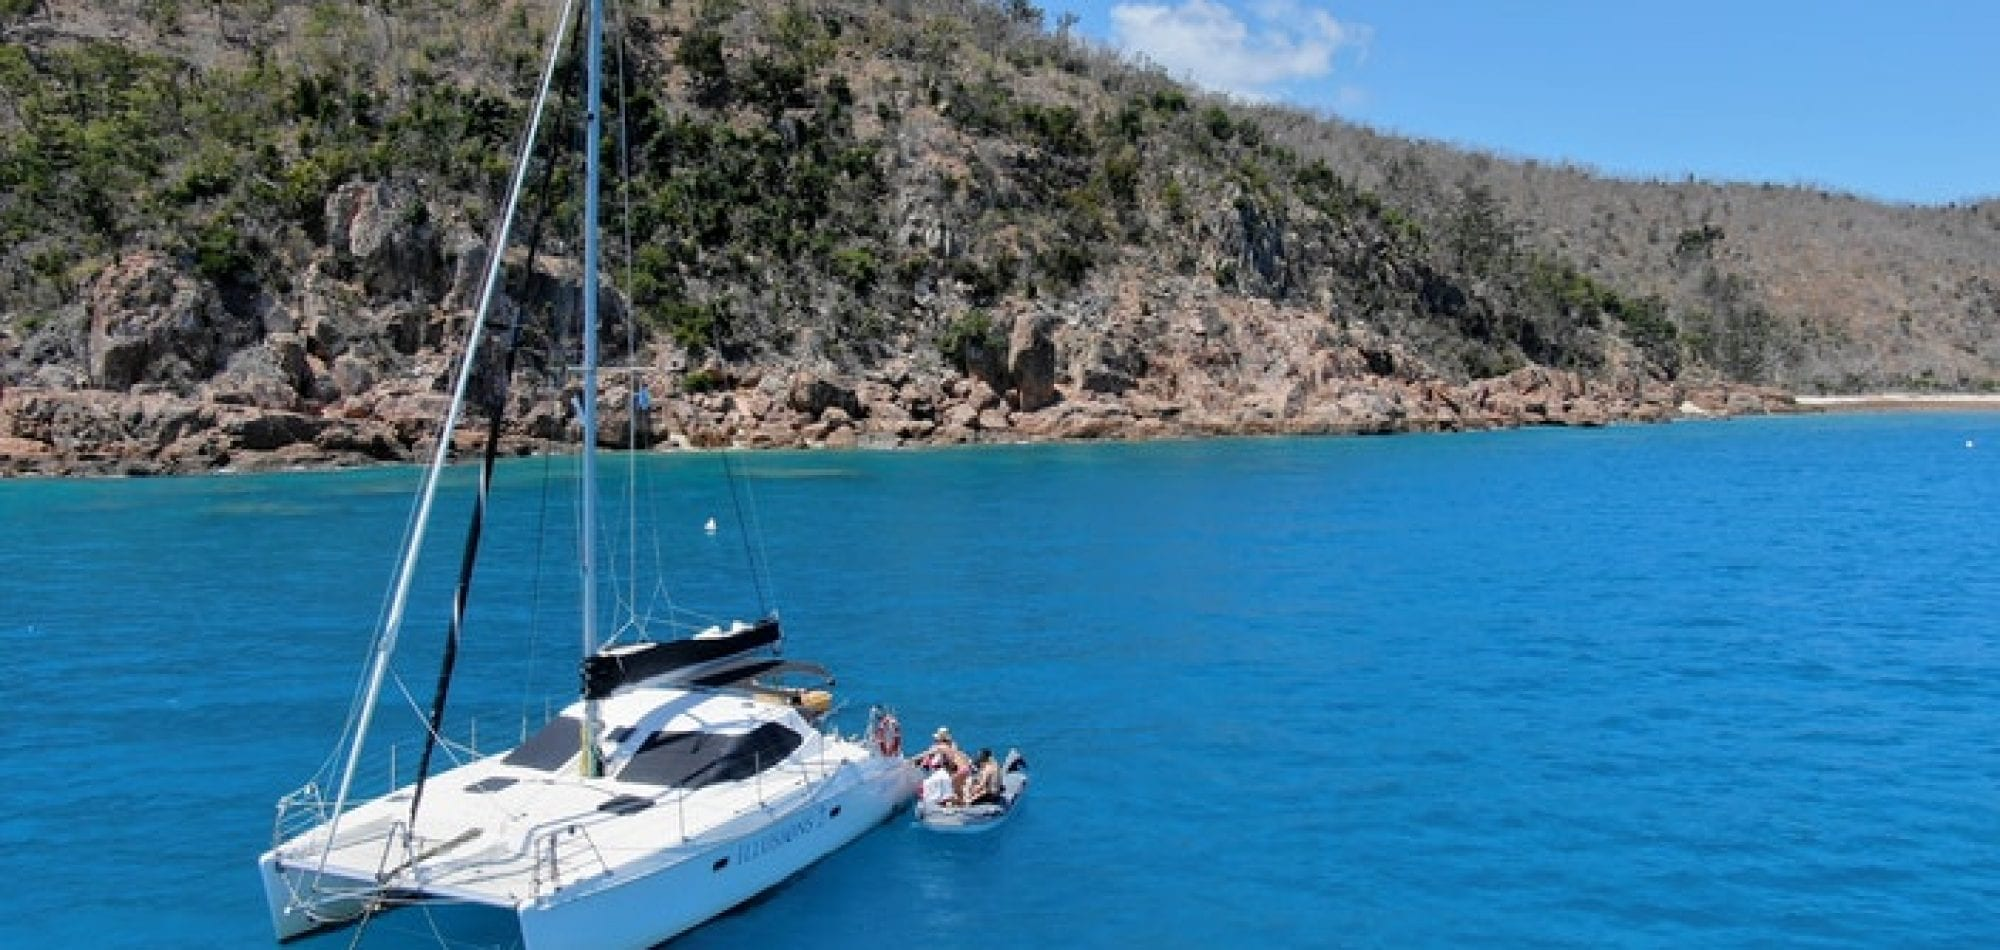 Illusions - Sailing Whitsunday Islands